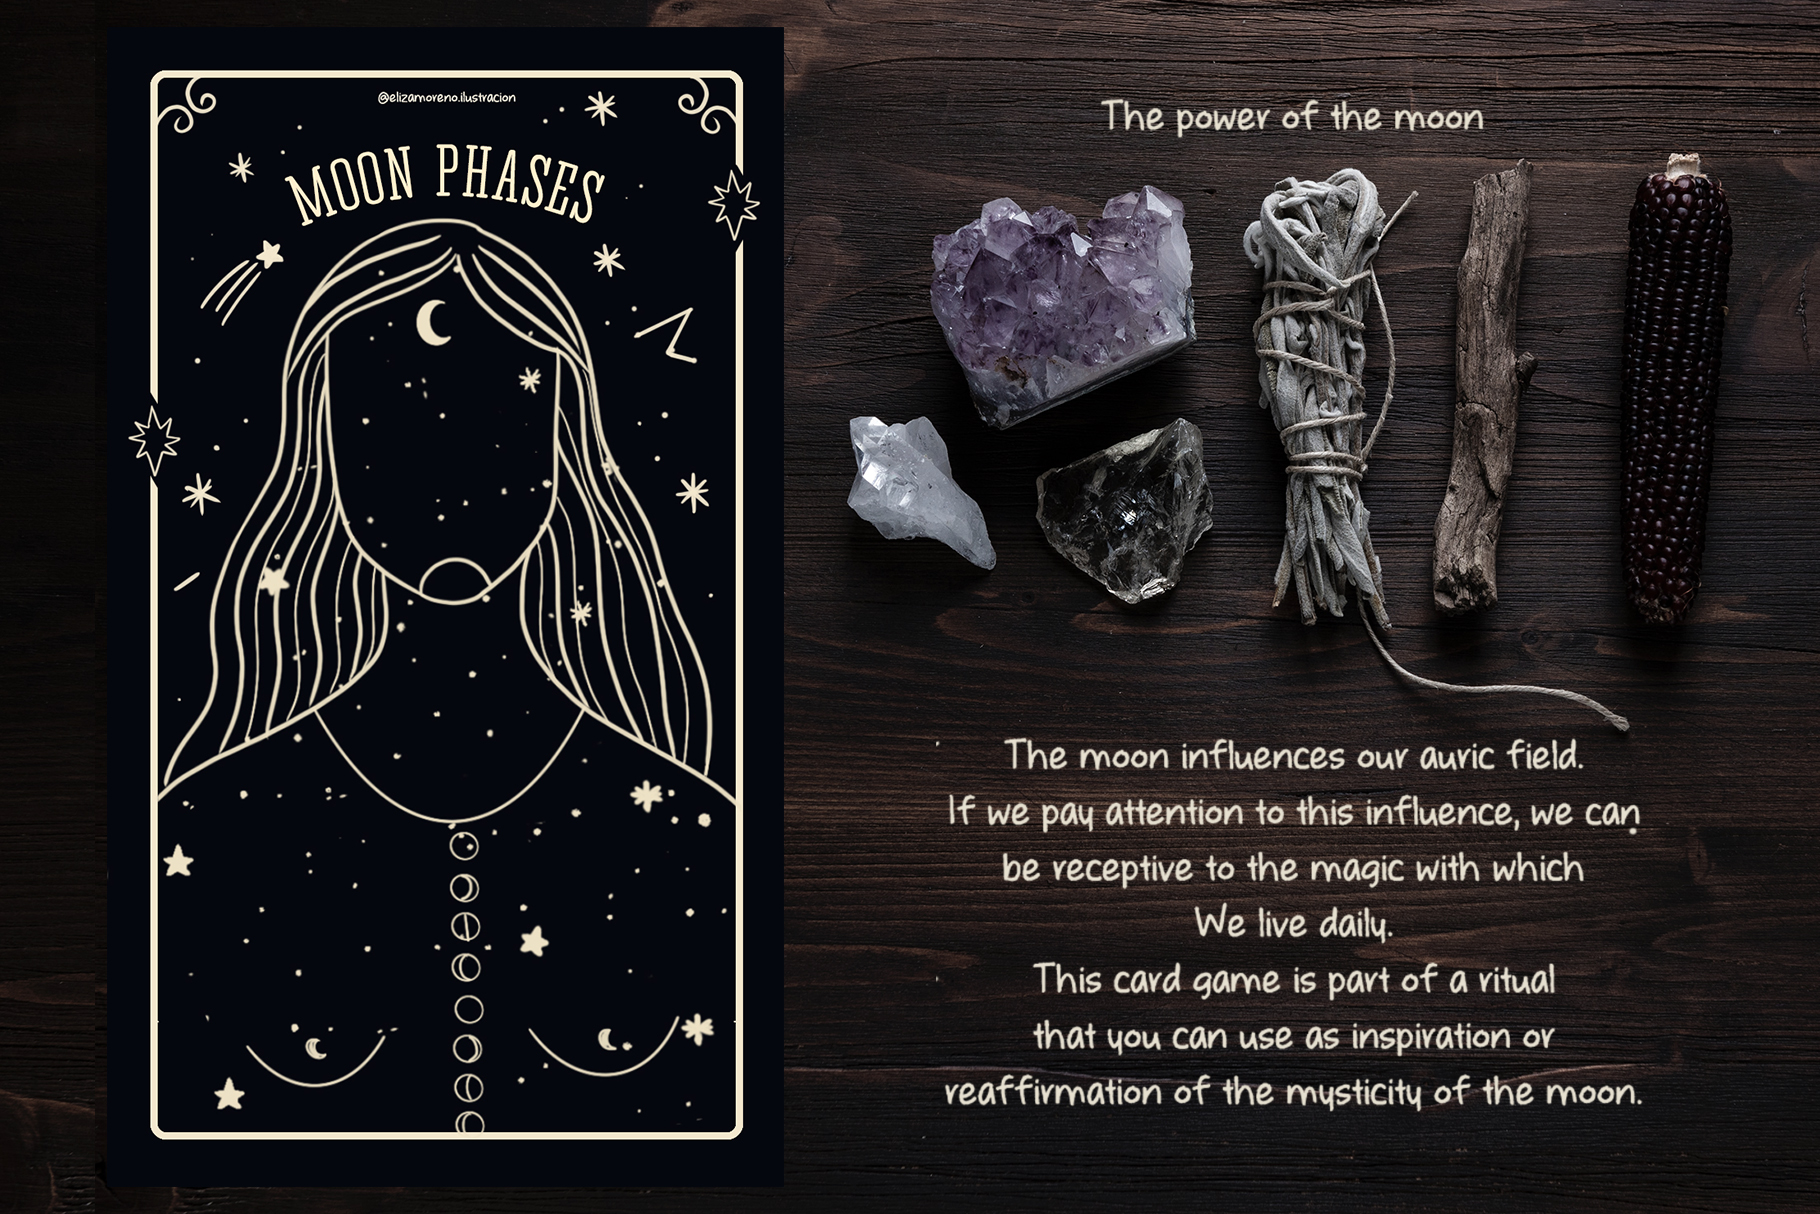 Moon phases mystical ritual cards example image 2